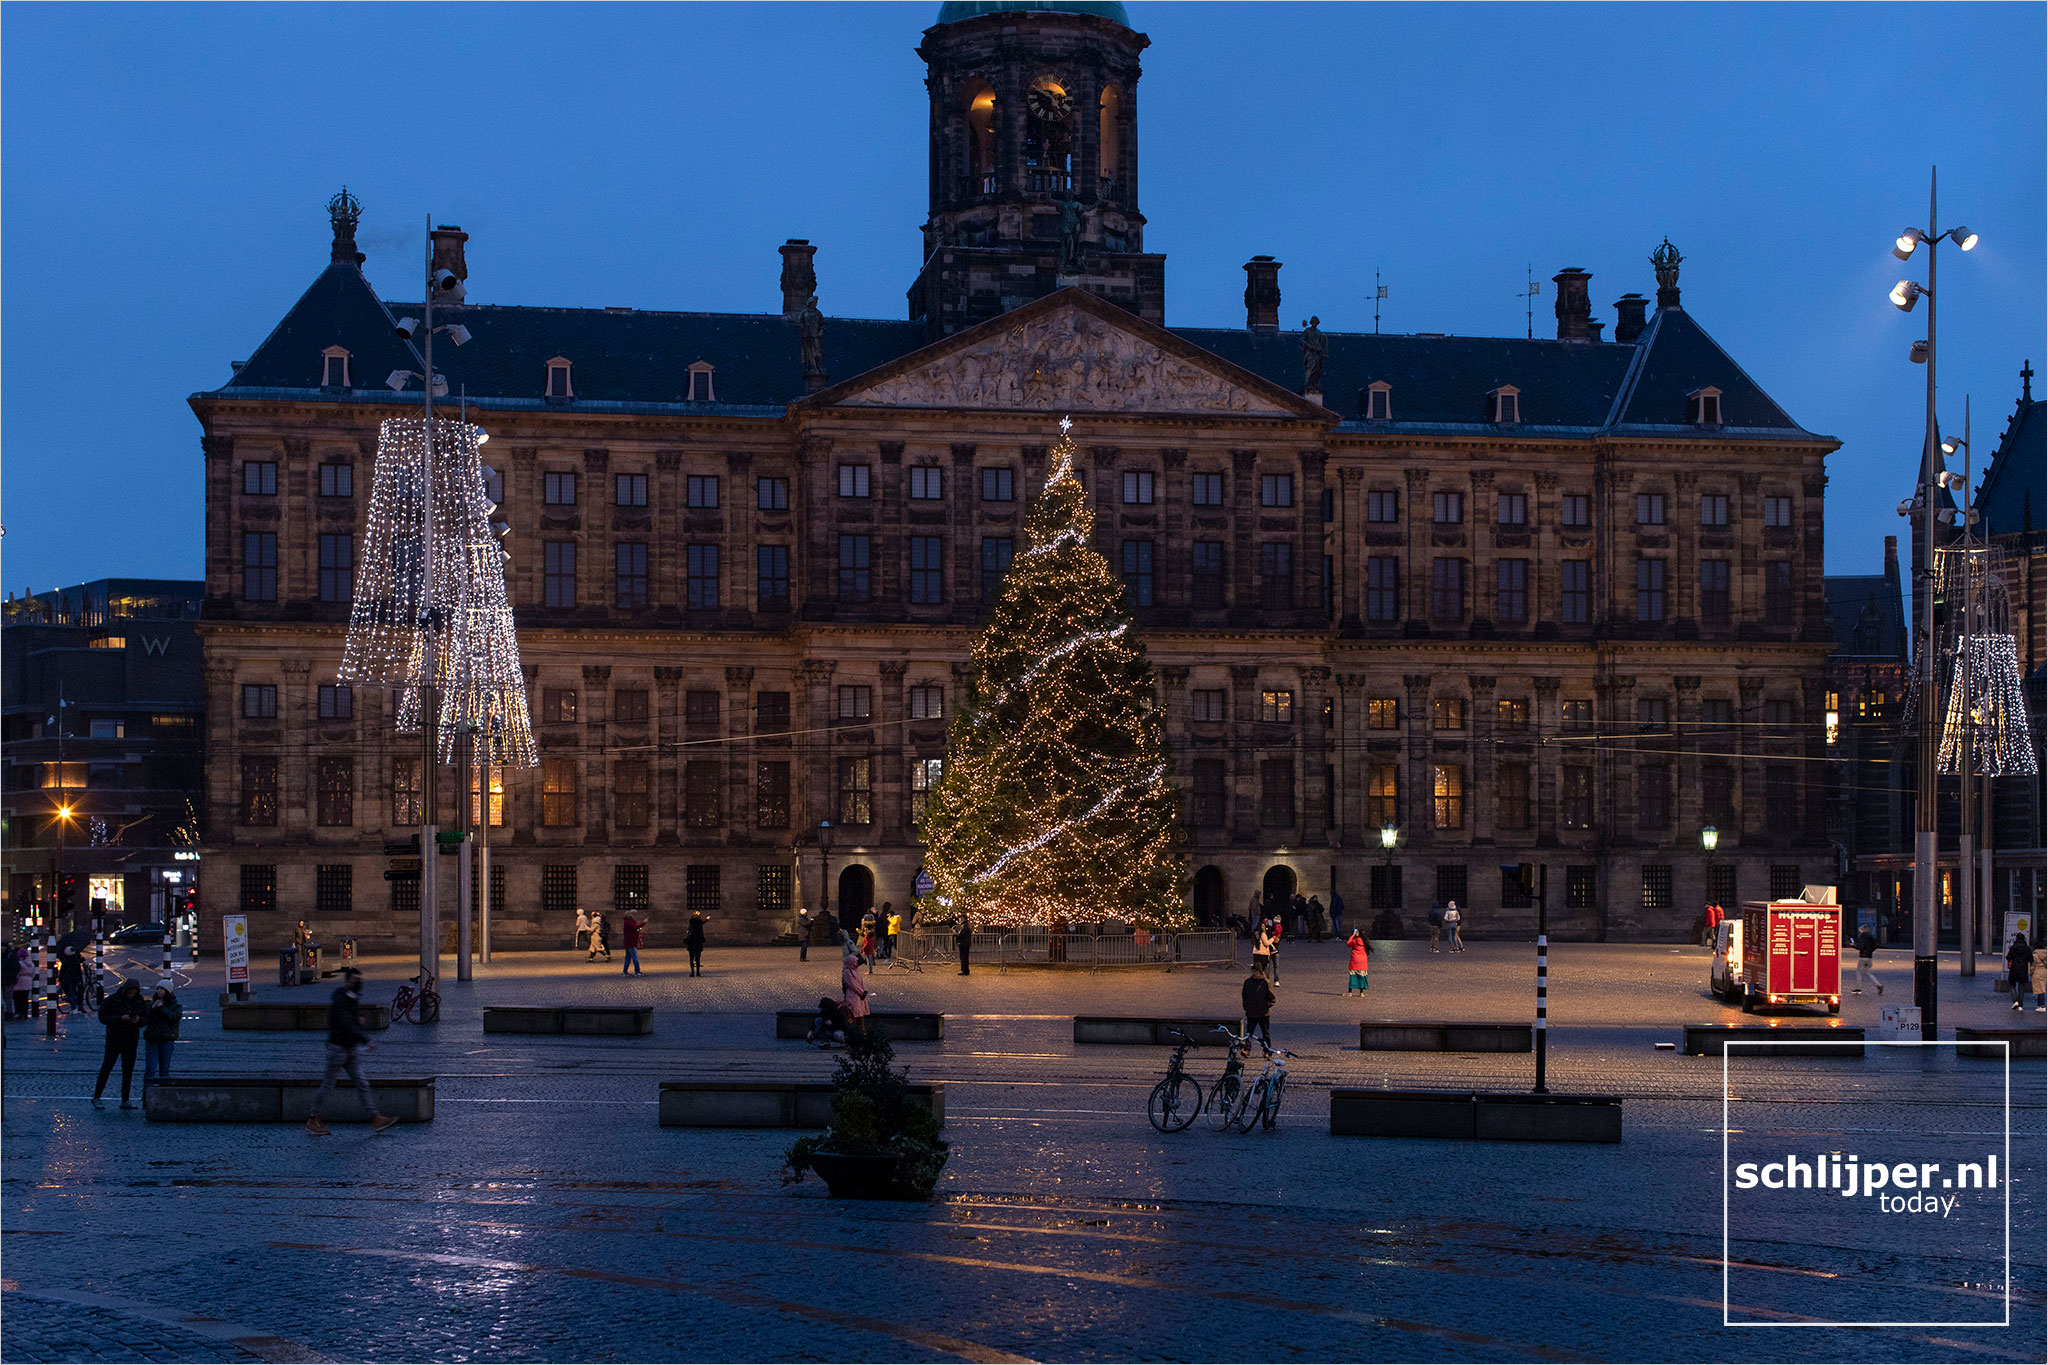 The Netherlands, Amsterdam, 26 december 2020